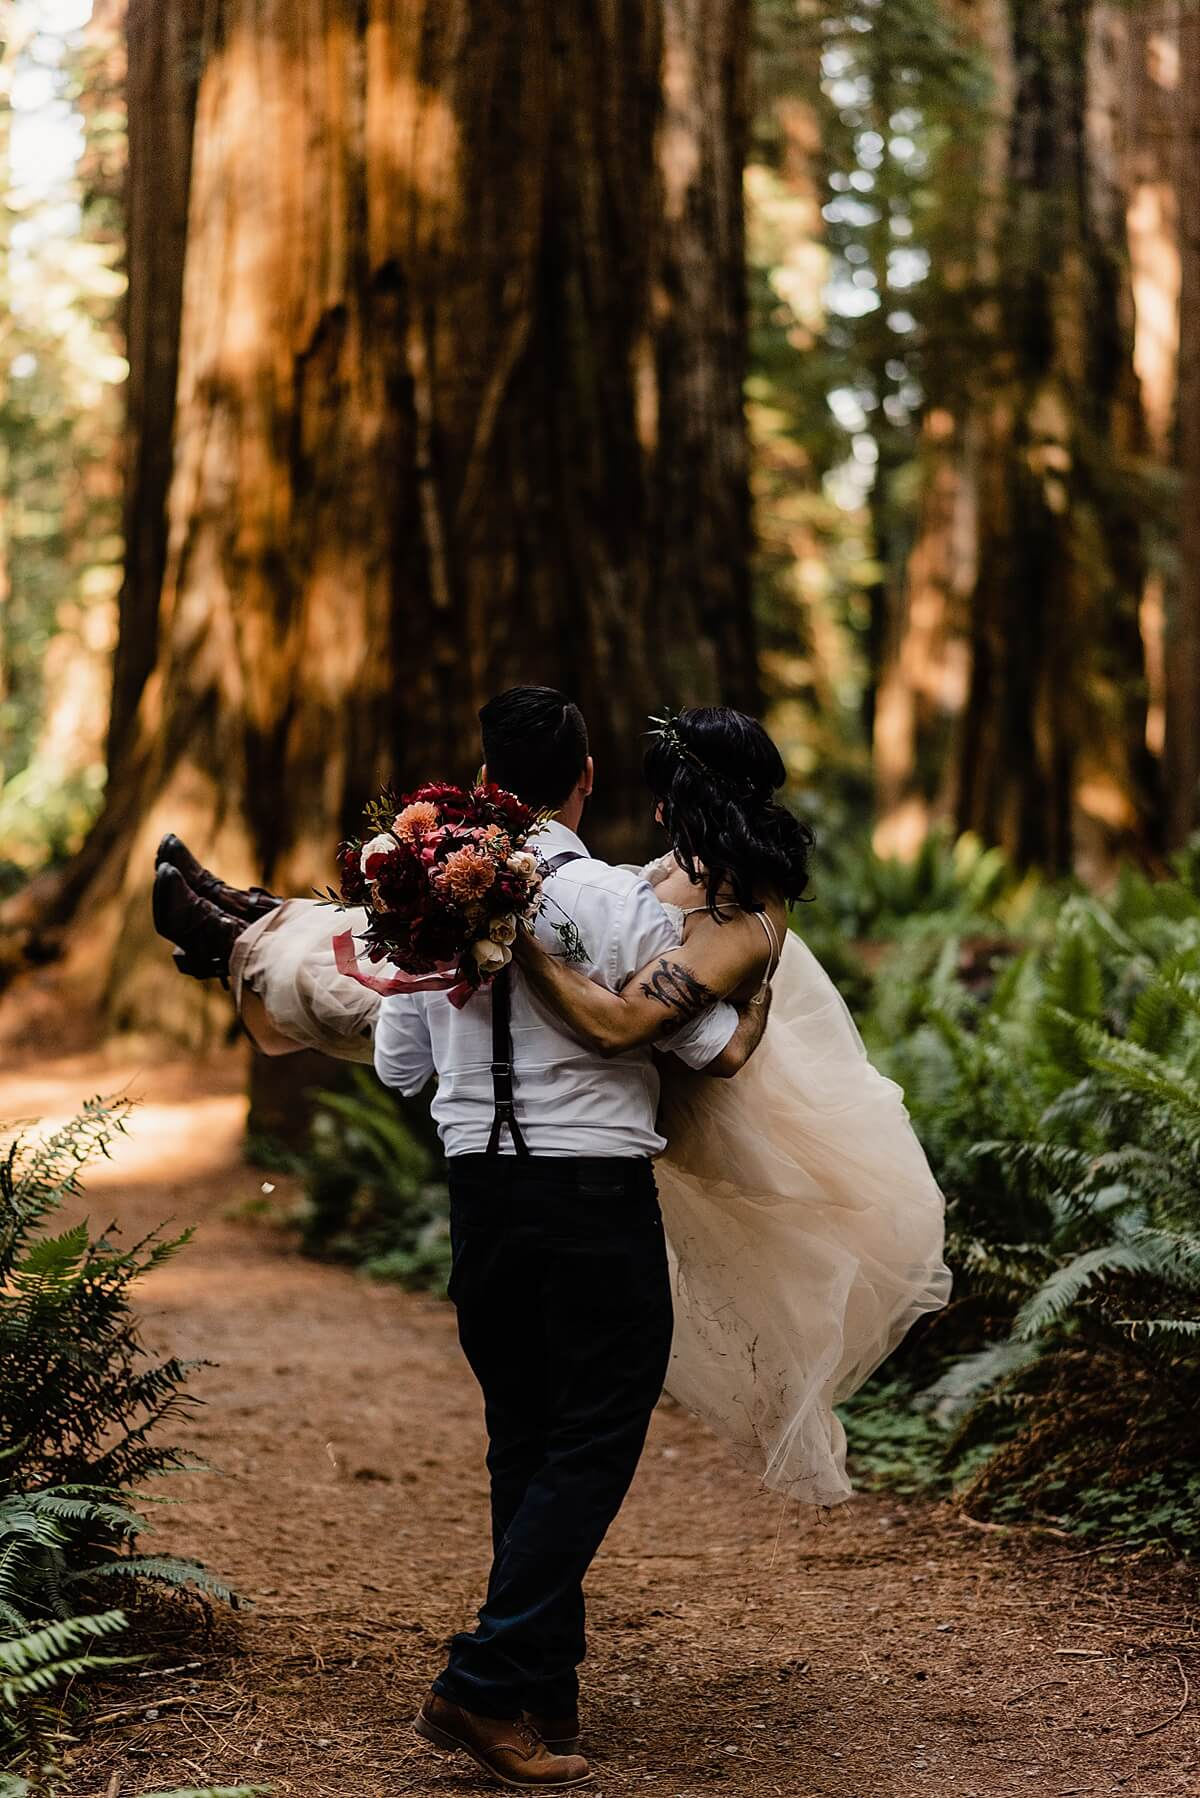 Allison-Brooks-Jedediah-Smiith-Redwoods-Adventure-Elopement-Wedding-S-Photography-Blog_0033.jpg